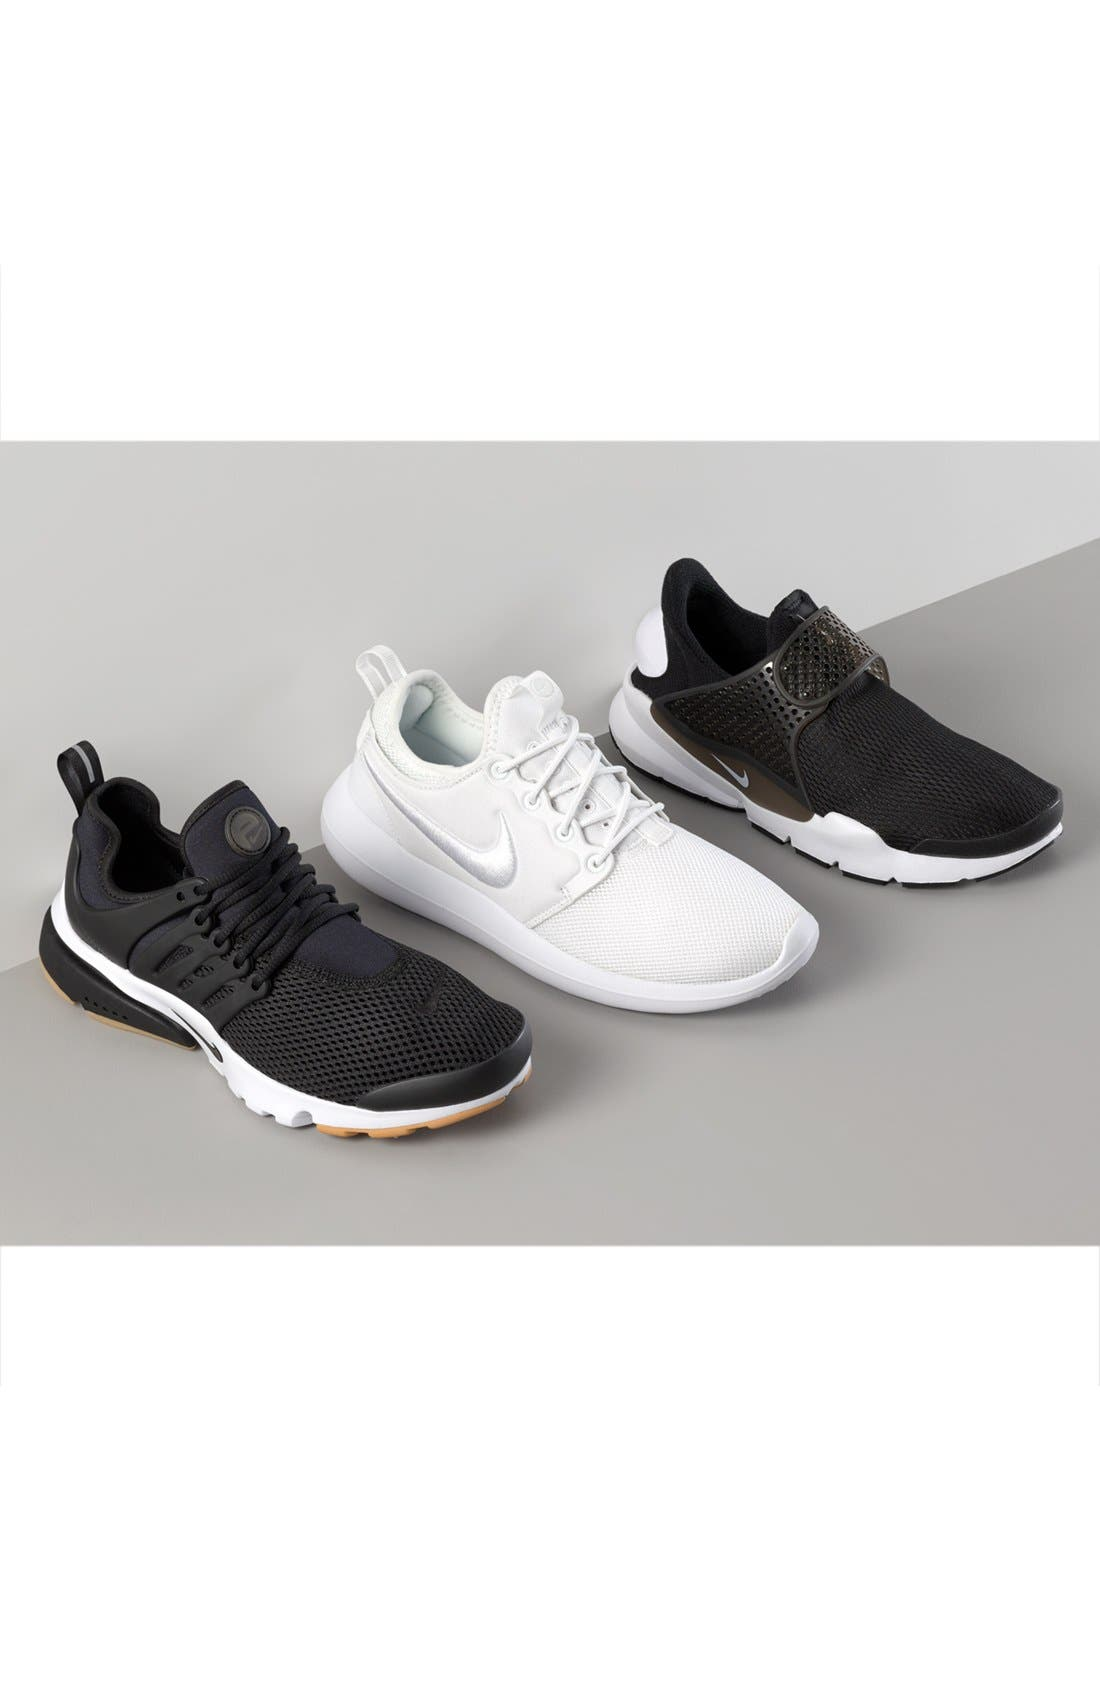 Air Presto Sneaker,                             Alternate thumbnail 7, color,                             CLEAR EMERALD/ SUMMIT WHITE